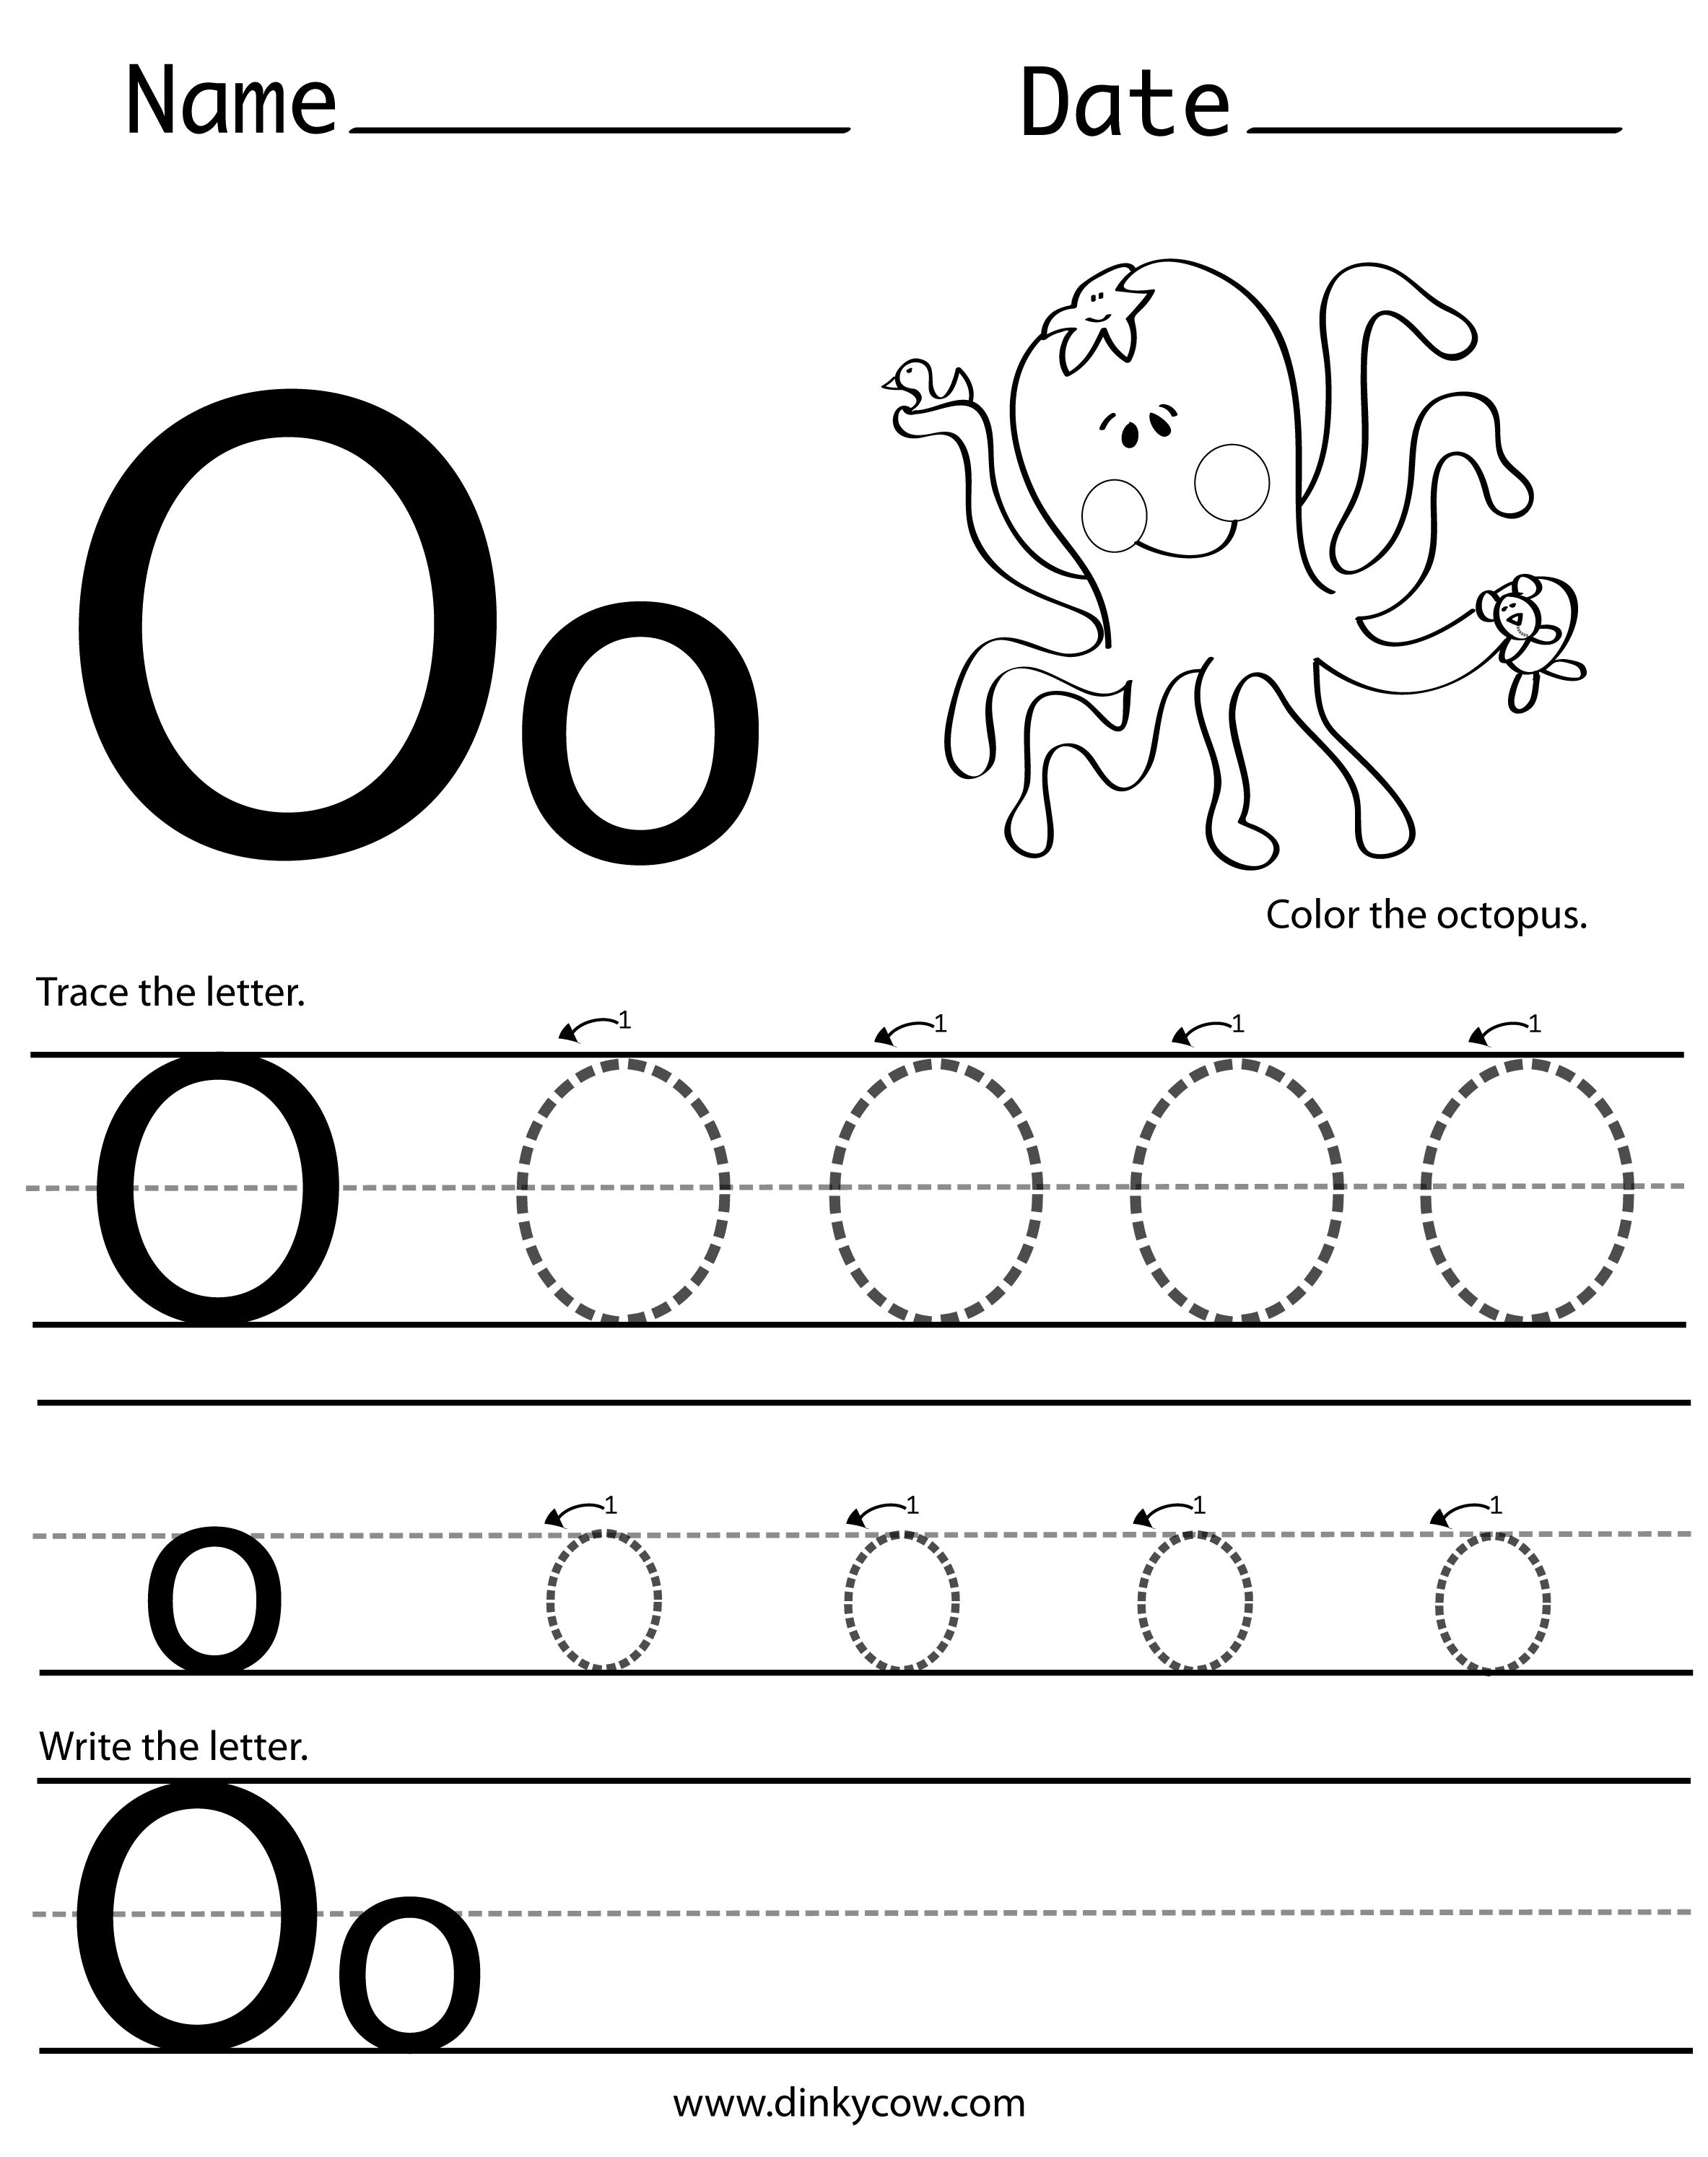 O Free Handwriting Worksheet Print 2 366 2 988 Pixels